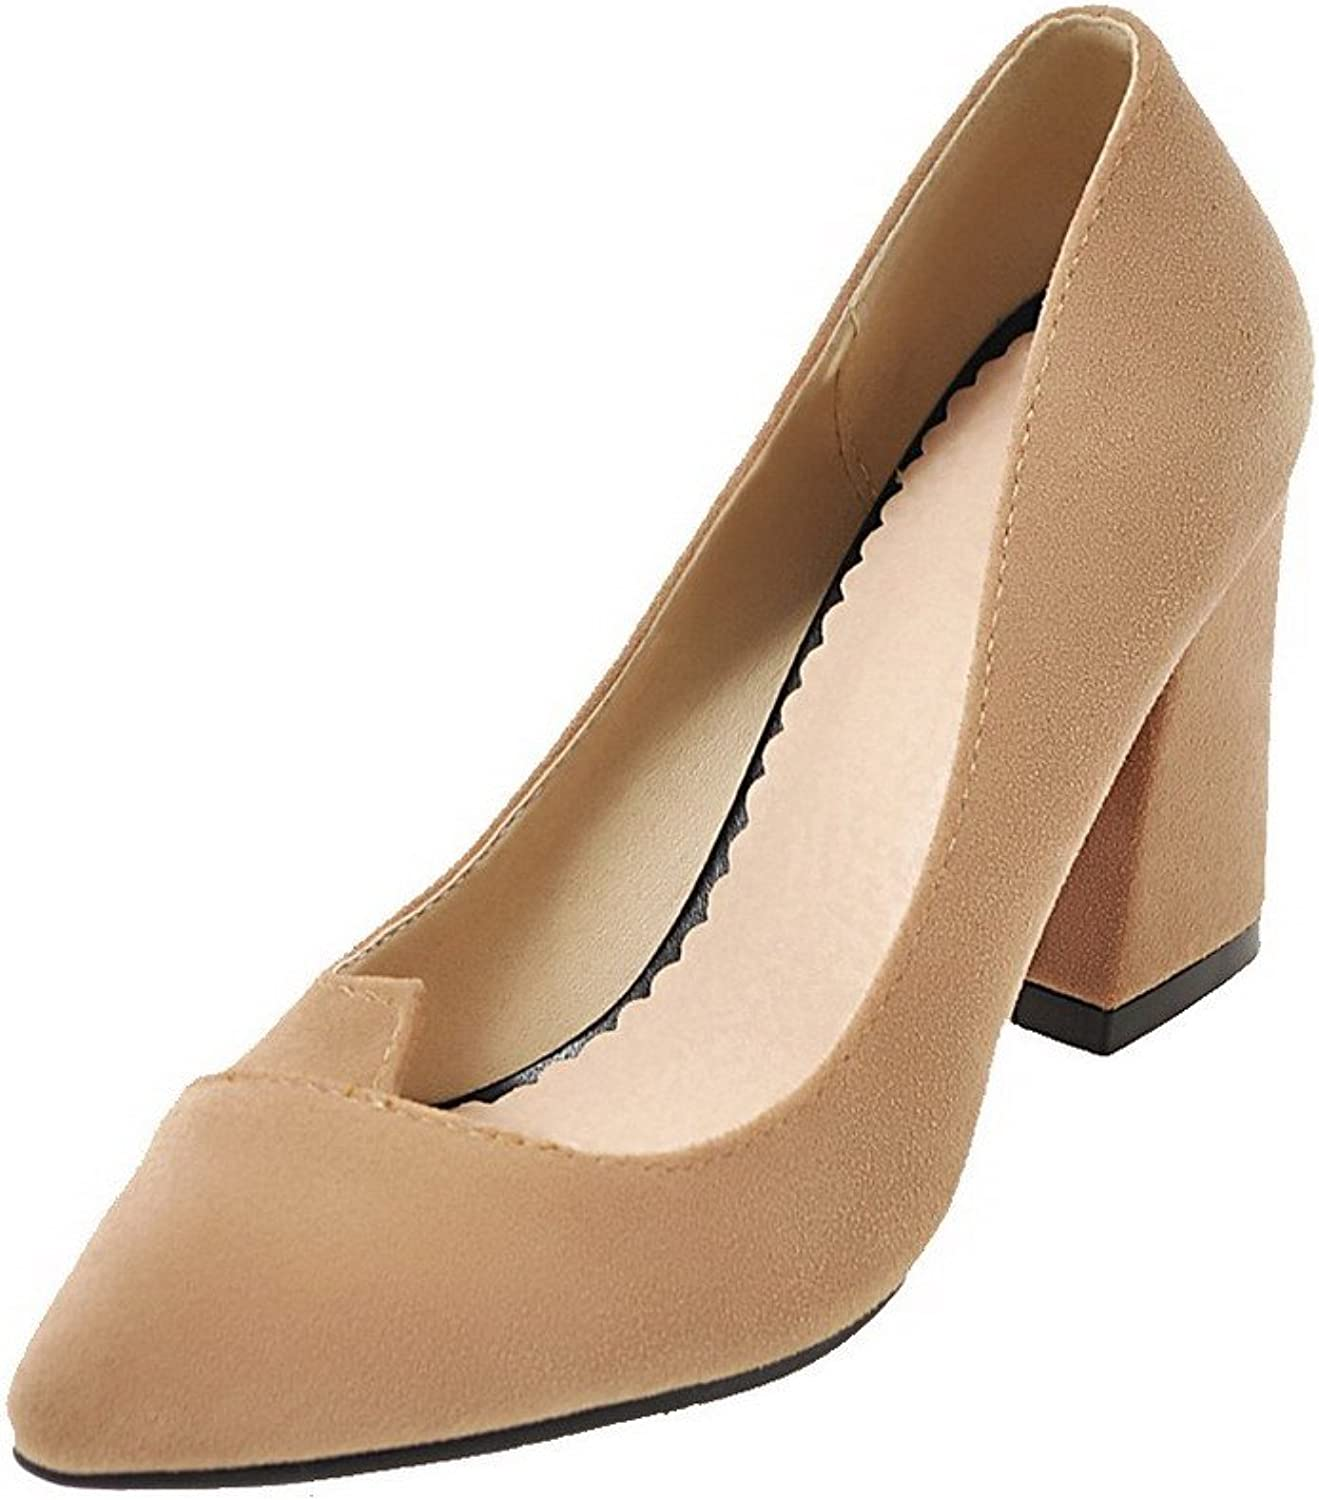 WeiPoot Women's Closed-Toe Pull-On Frosted Solid High-Heels Pumps-shoes